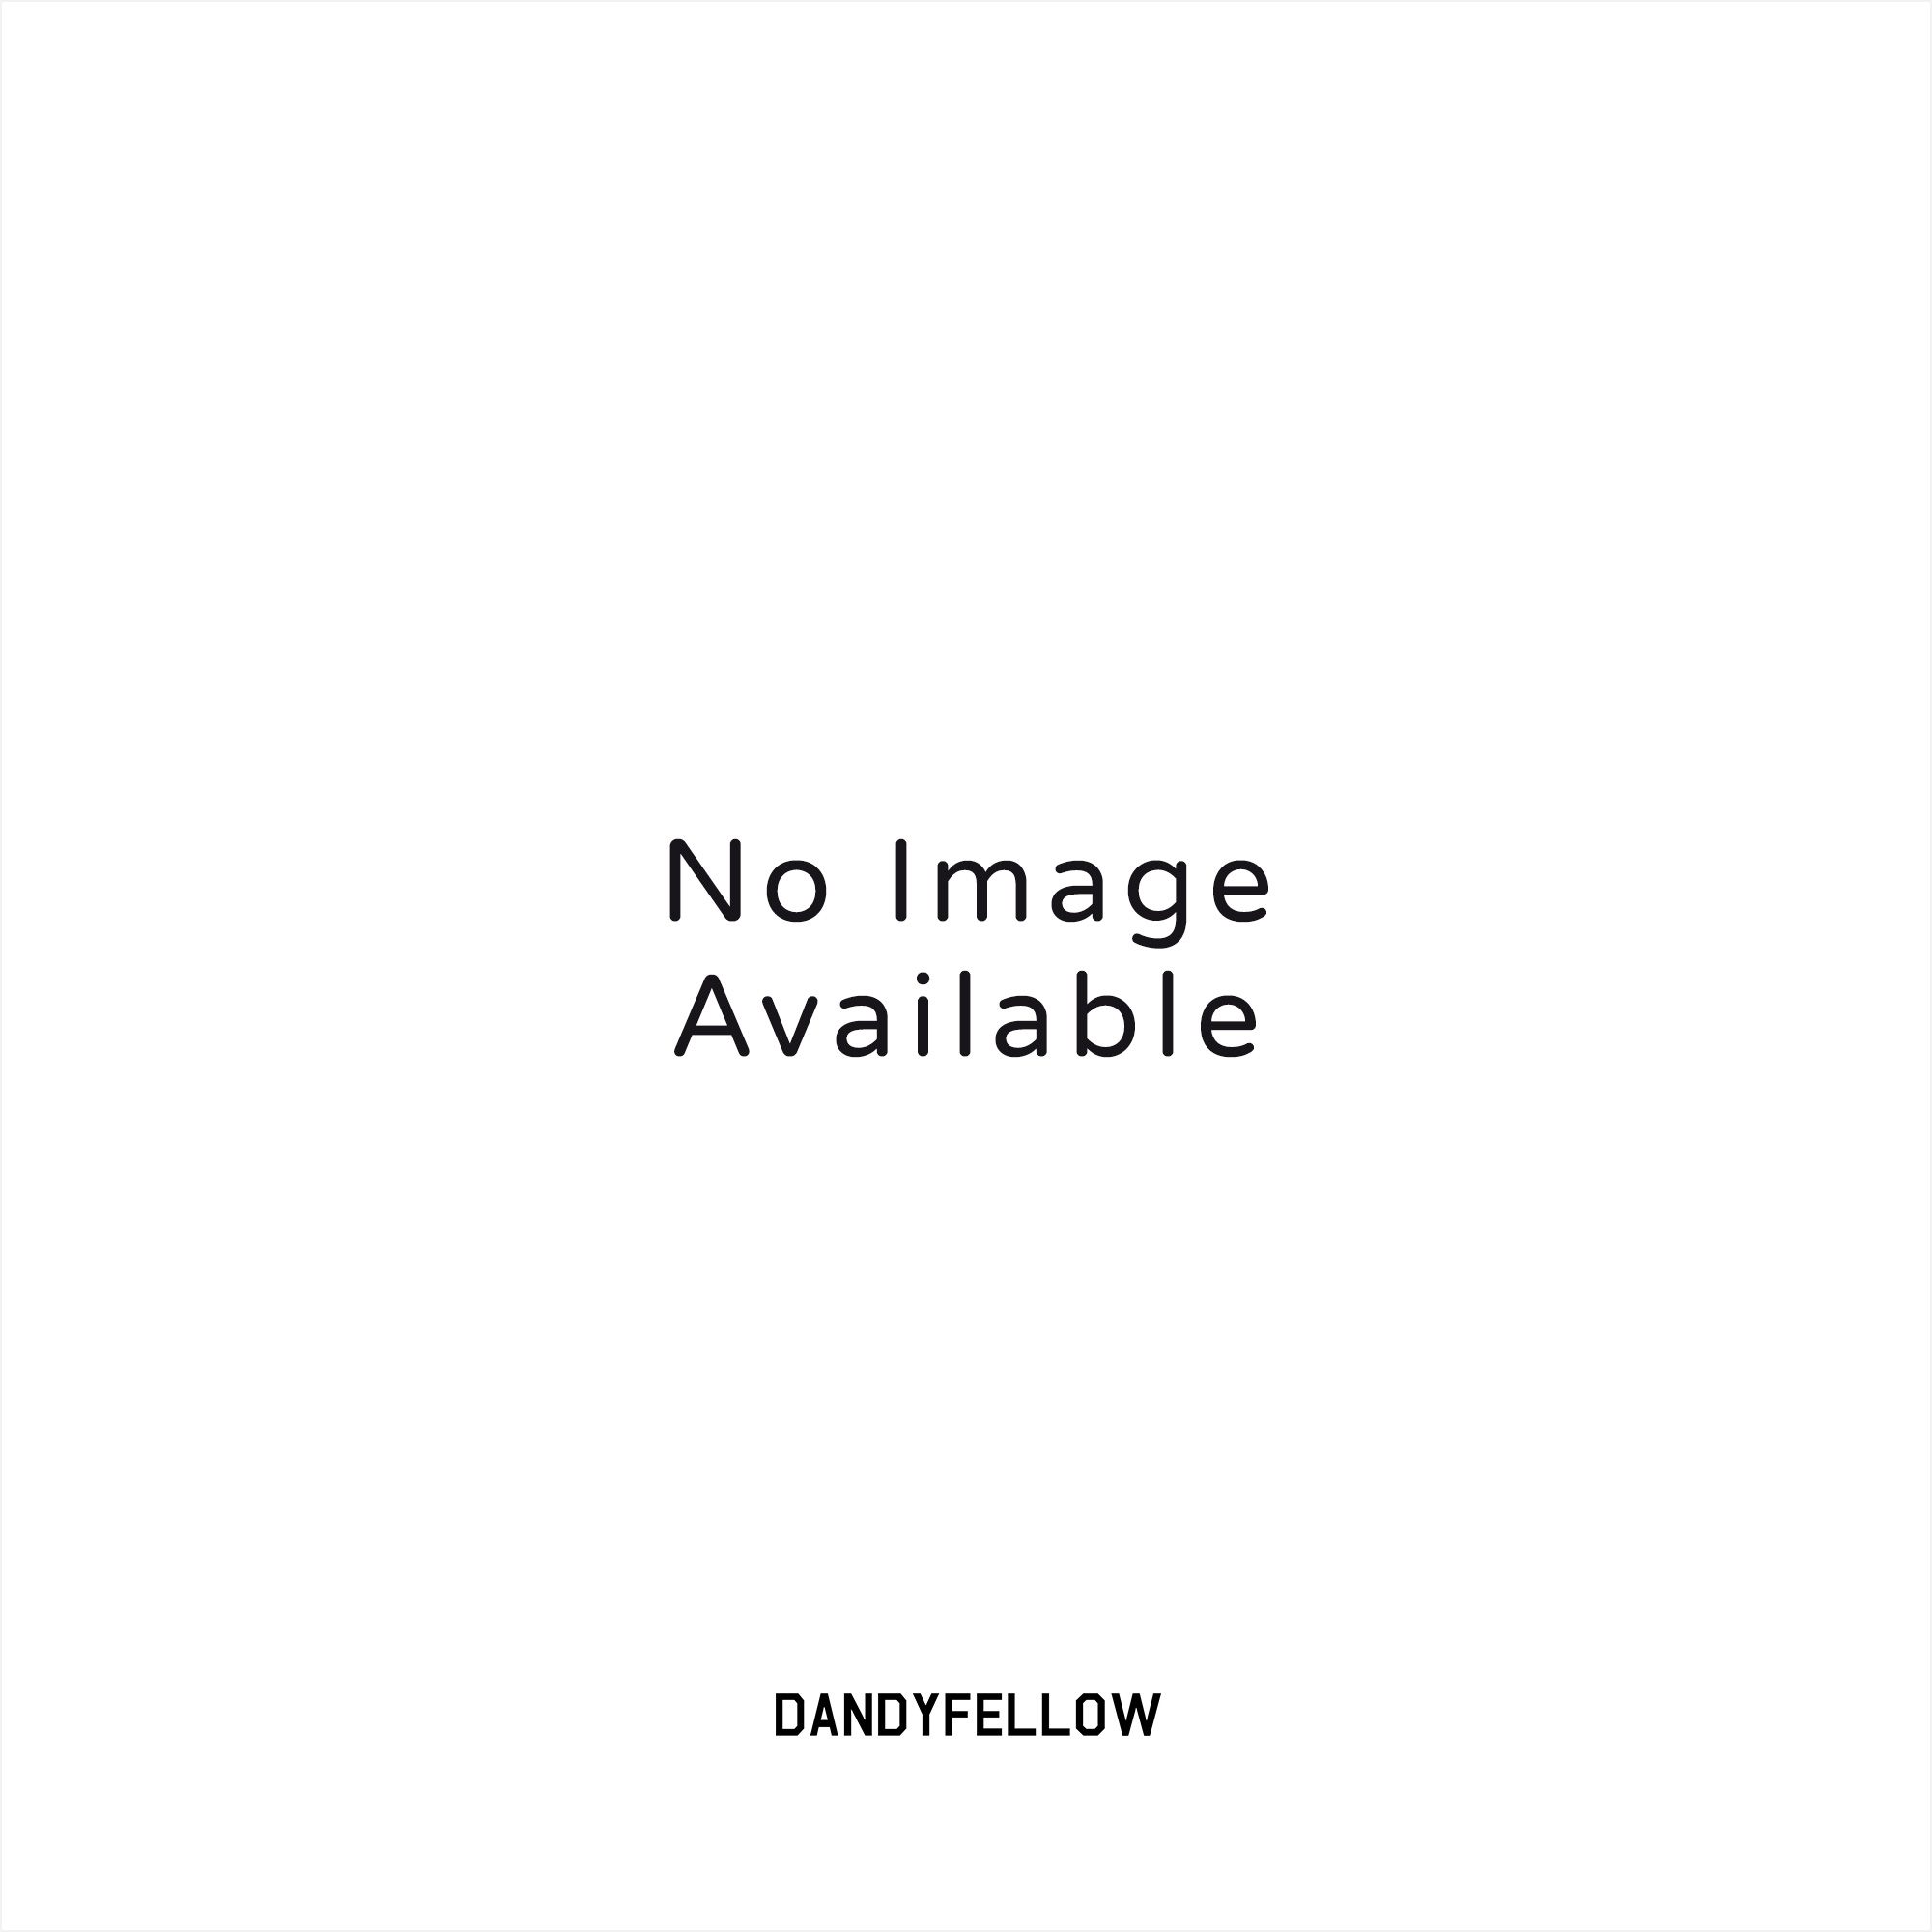 2cc2fd46e2b Adidas Y-3 Kusari Sneakers (White) at Dandy Fellow